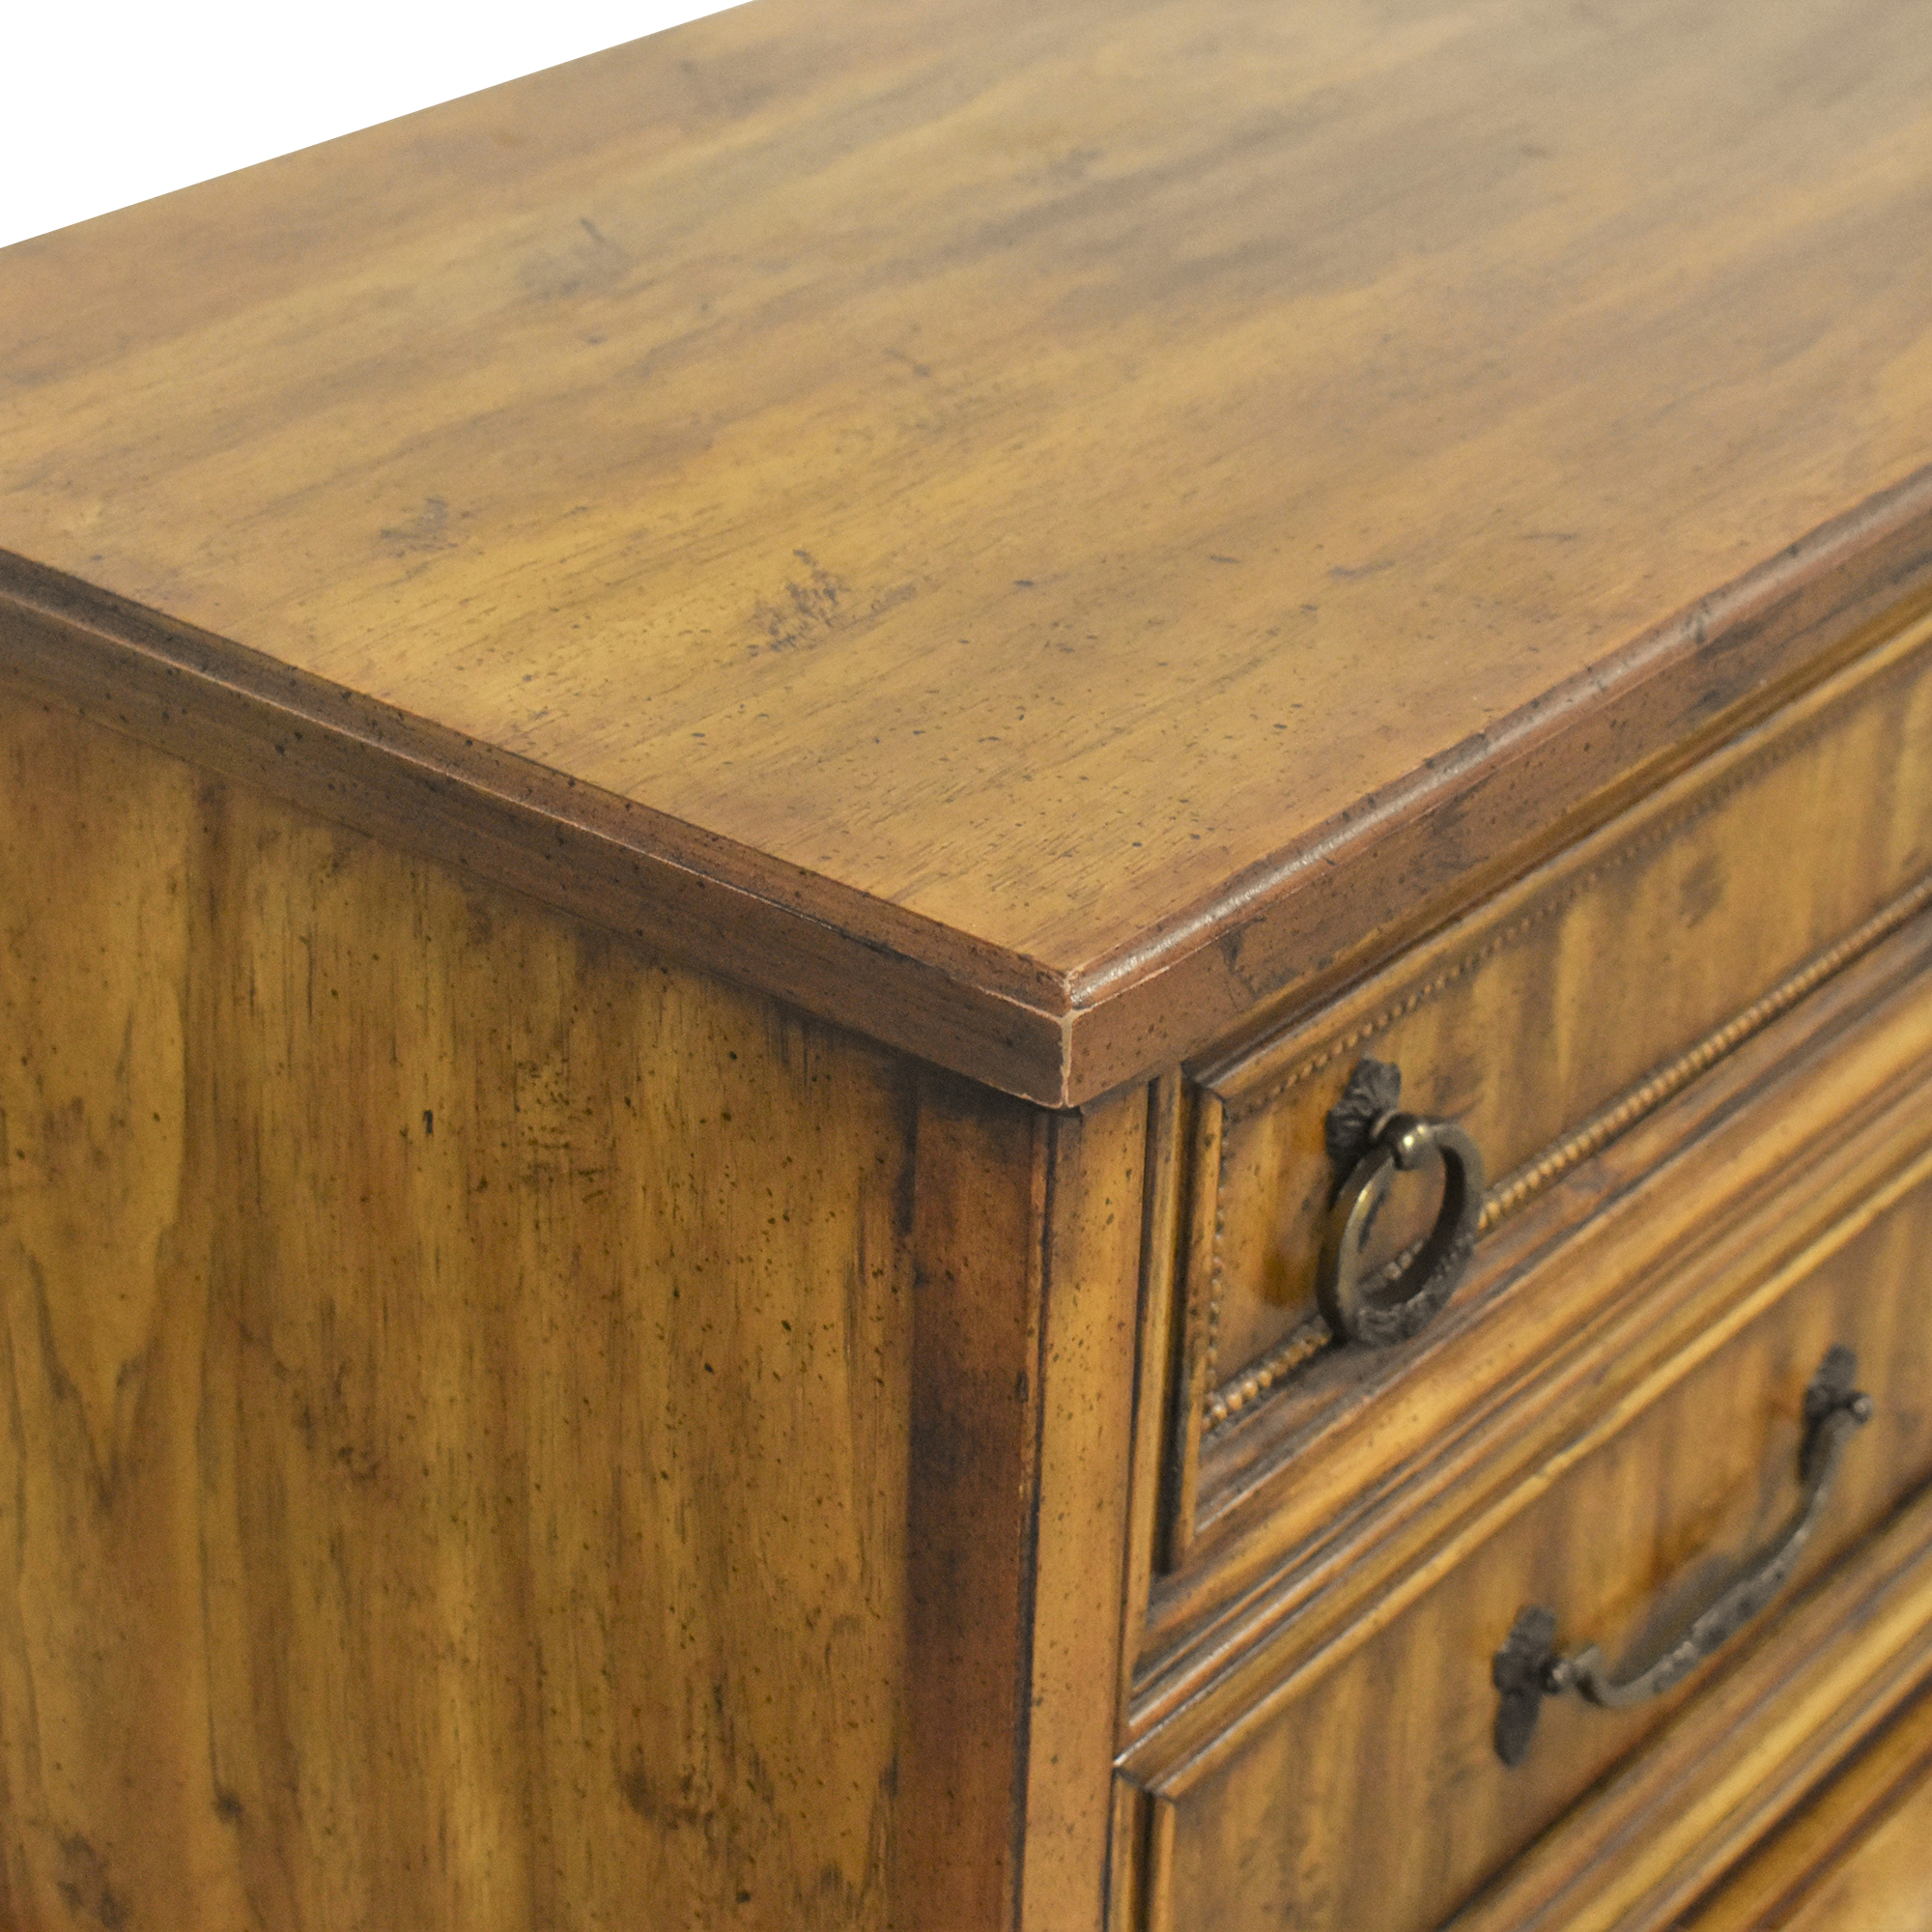 Stanley Furniture Stanley Furniture Two Drawer Nightstands used